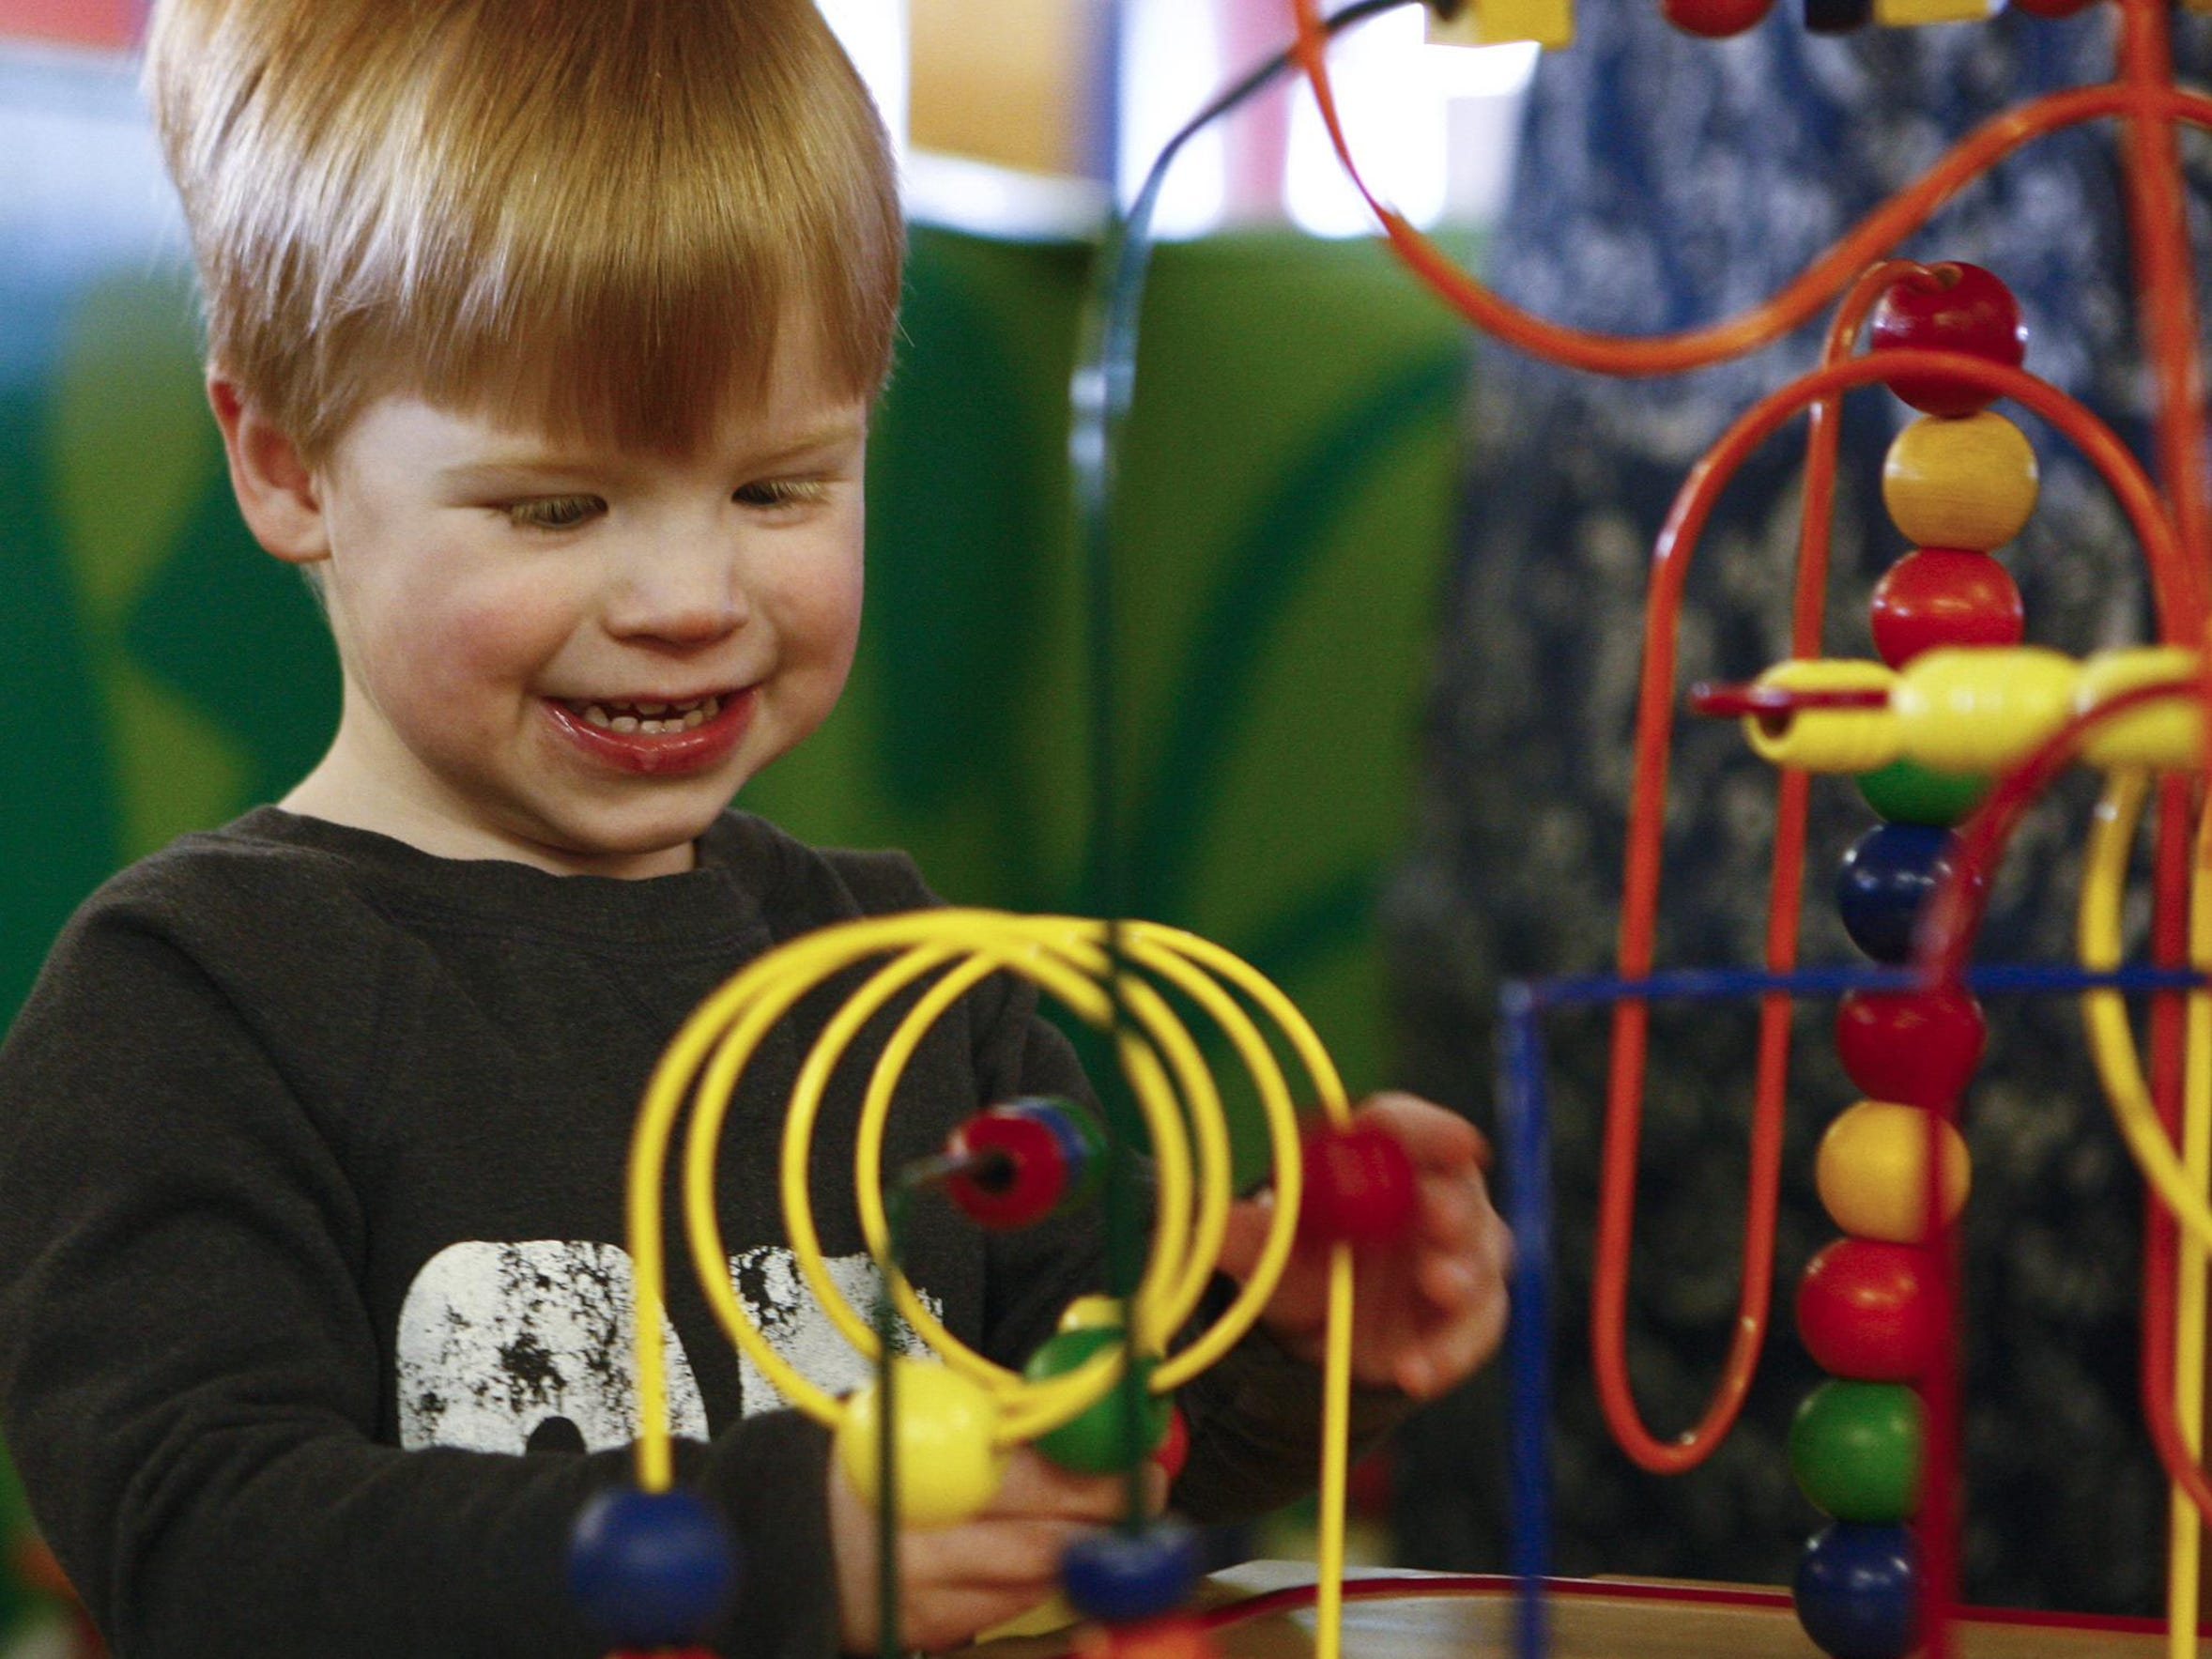 The Children's Museum of Montana offers educational fun for kids.